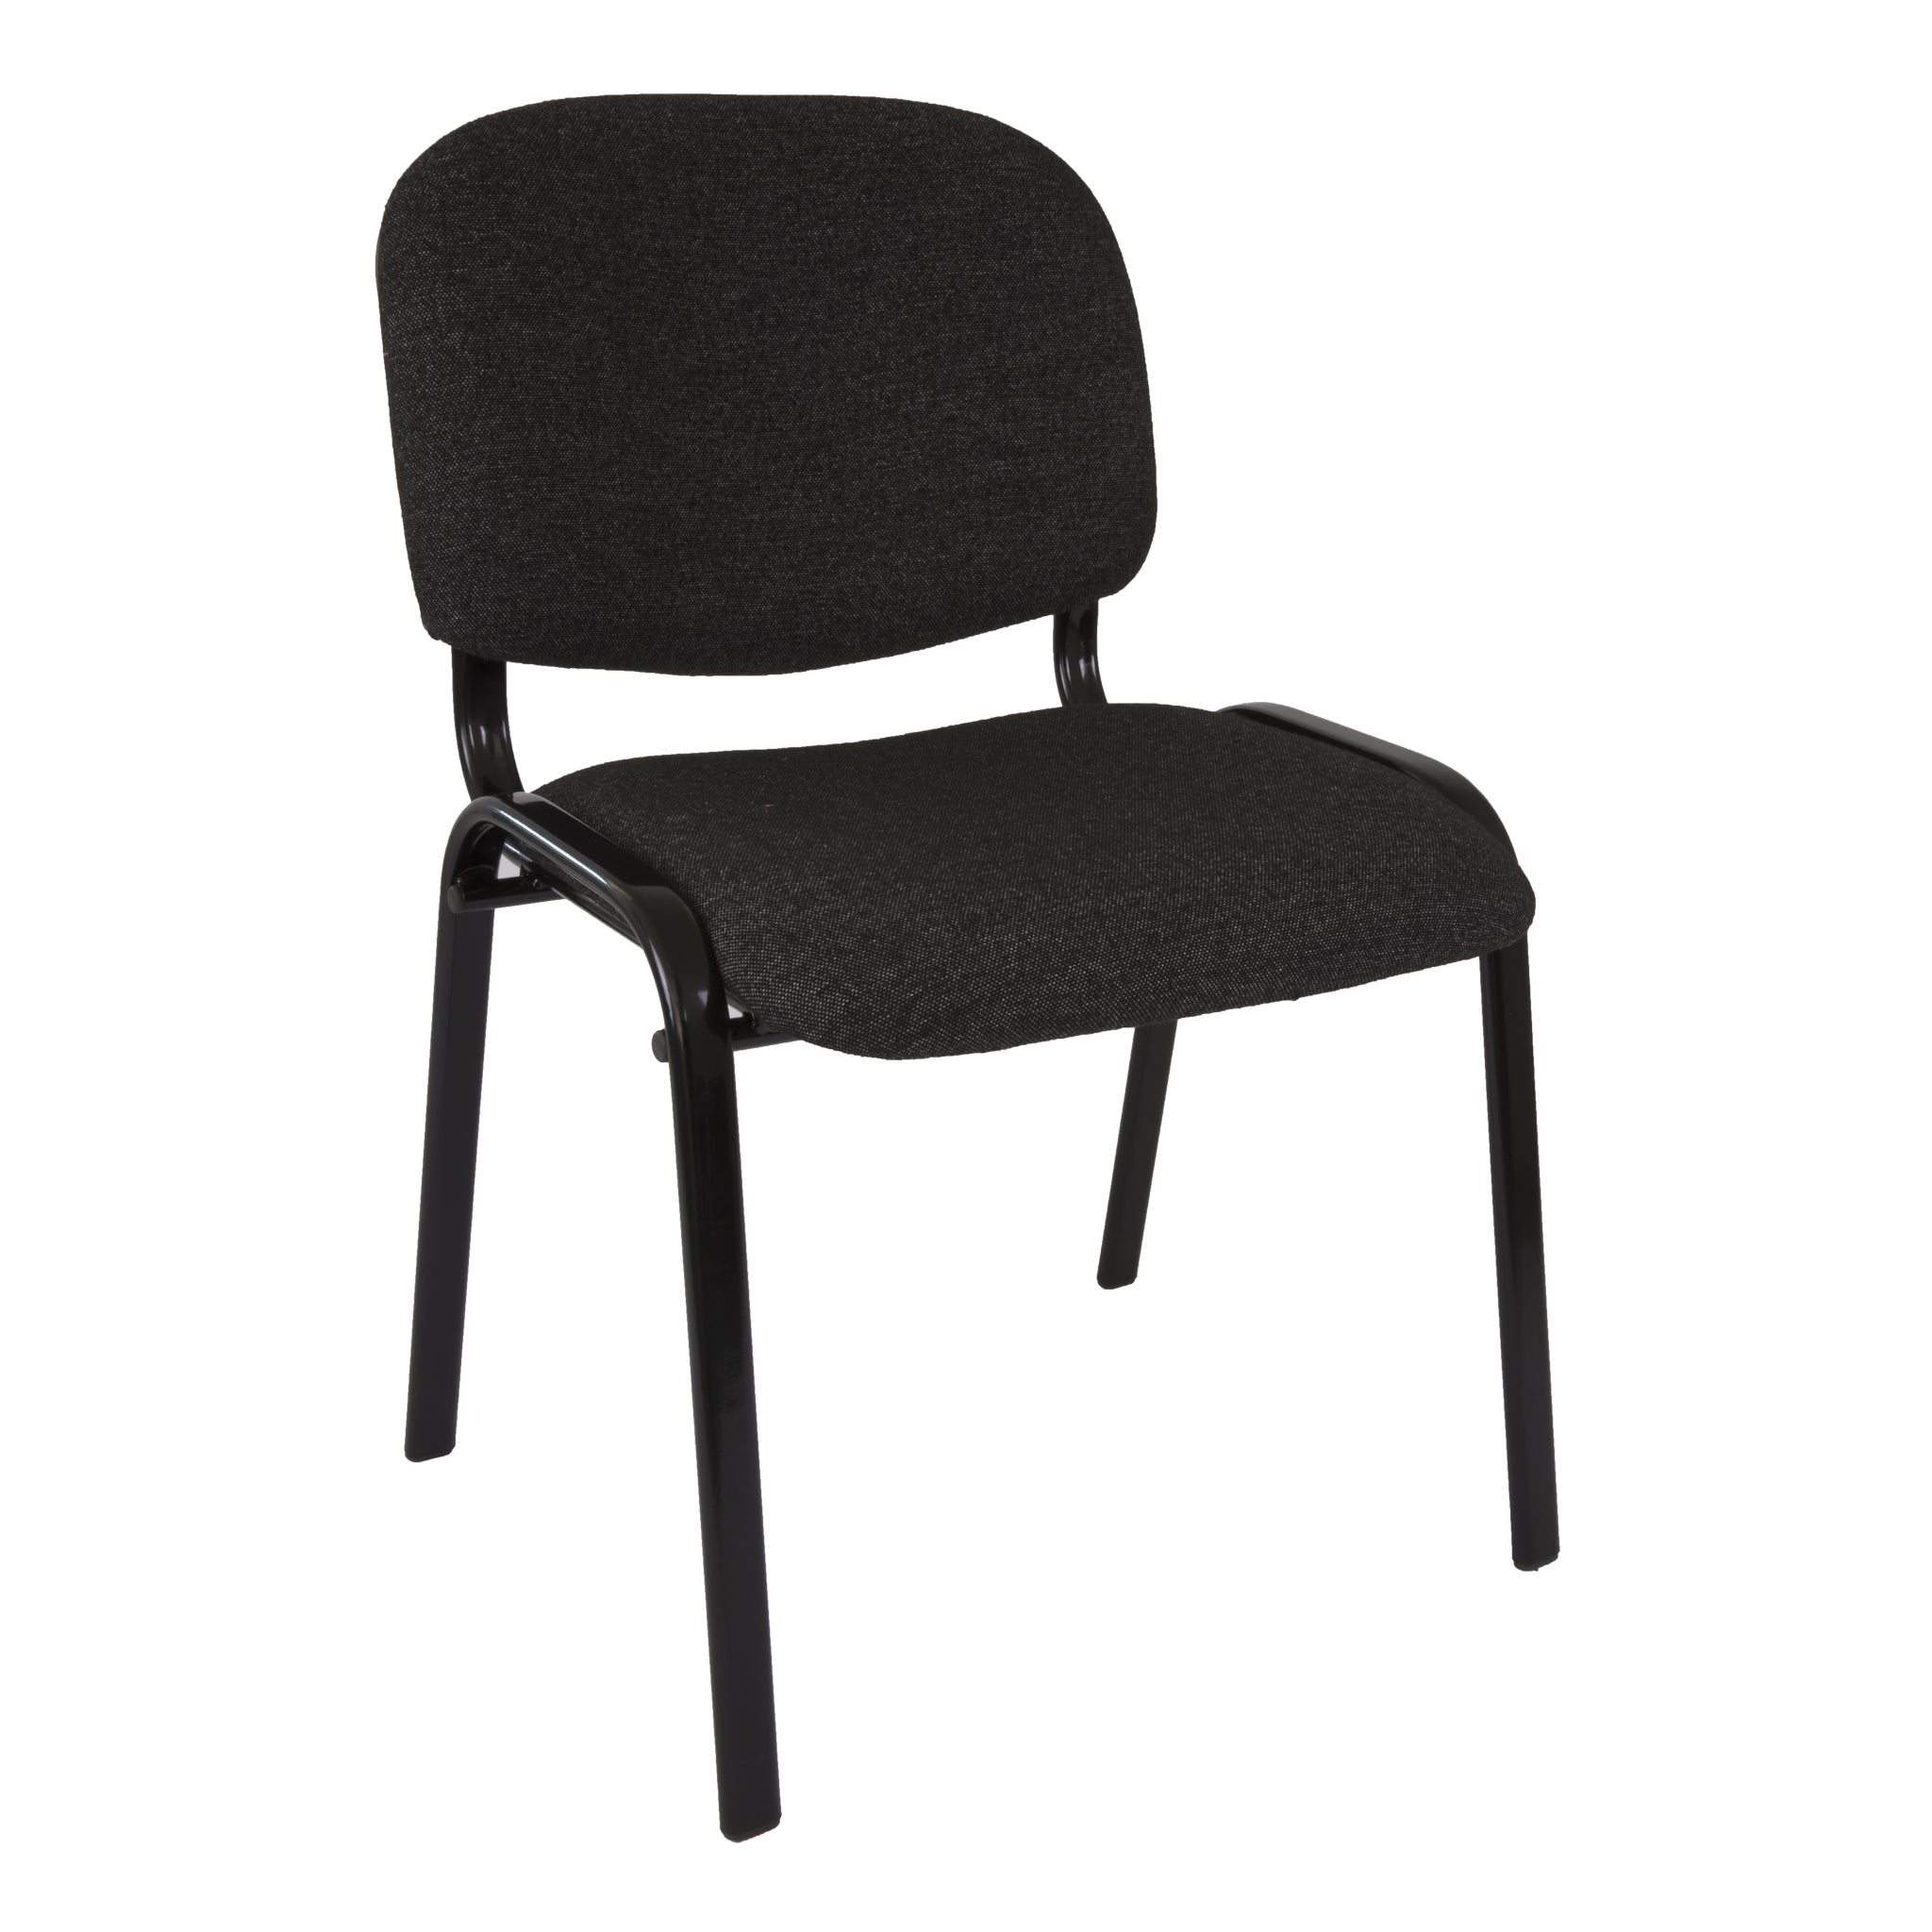 V900 Visitor Chair